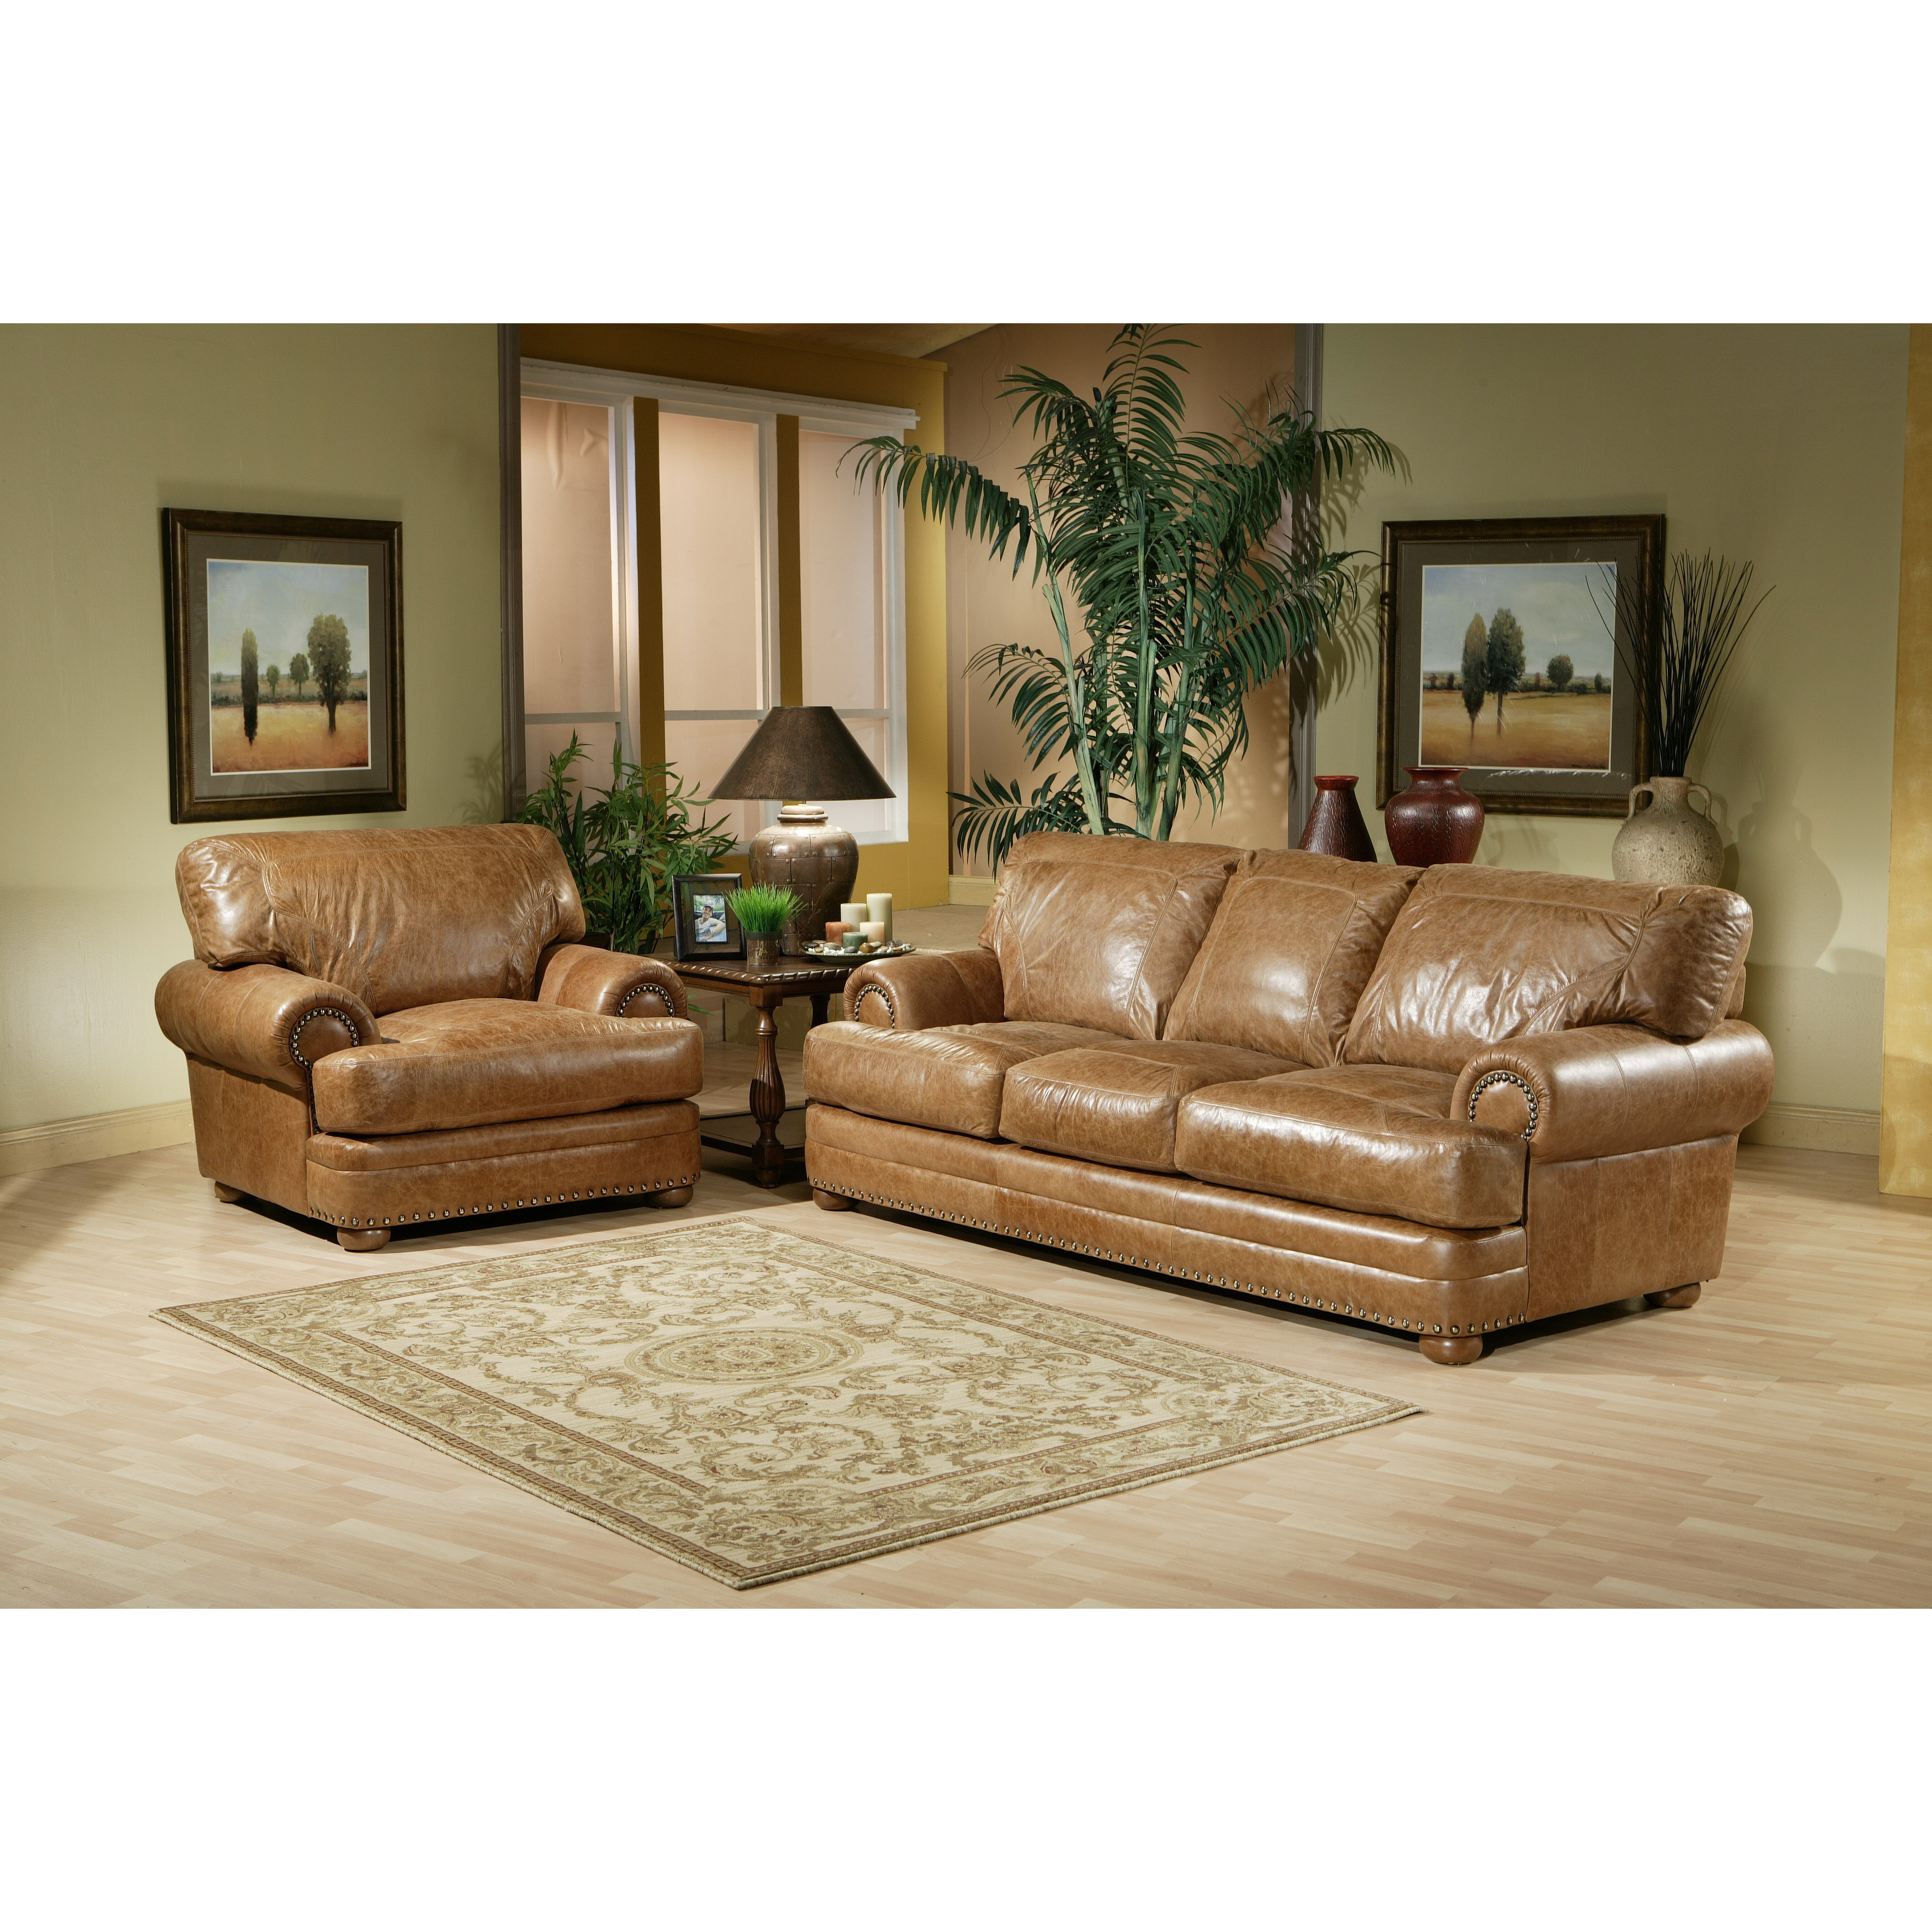 Best ideas about Wayfair Living Room Furniture . Save or Pin Omnia Leather Houston Leather Living Room Set & Reviews Now.